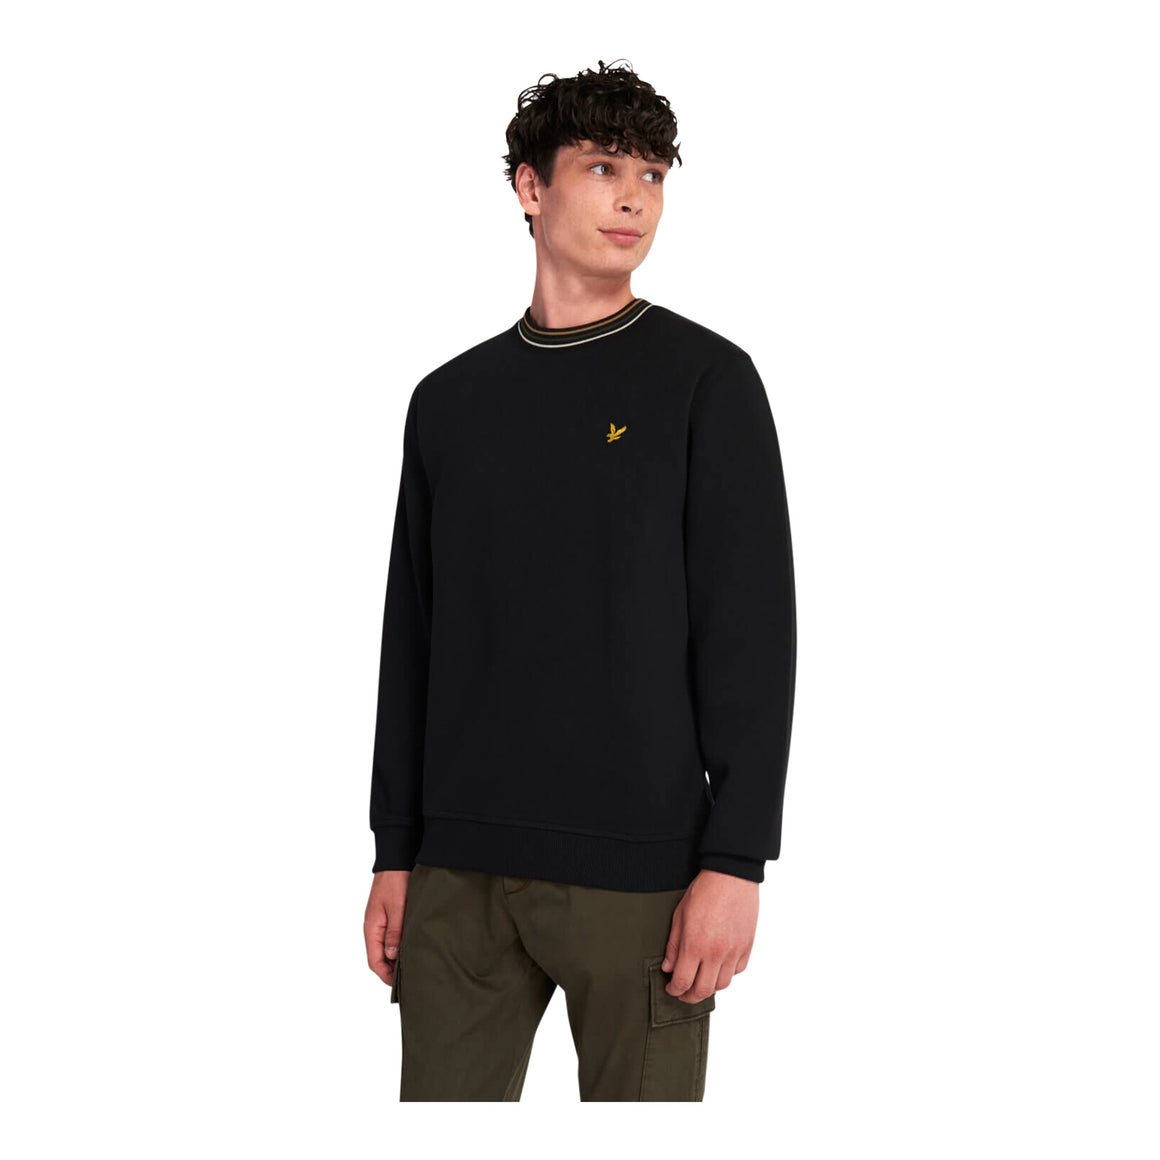 Pique Sweatshirt With Tipping for Men in Black